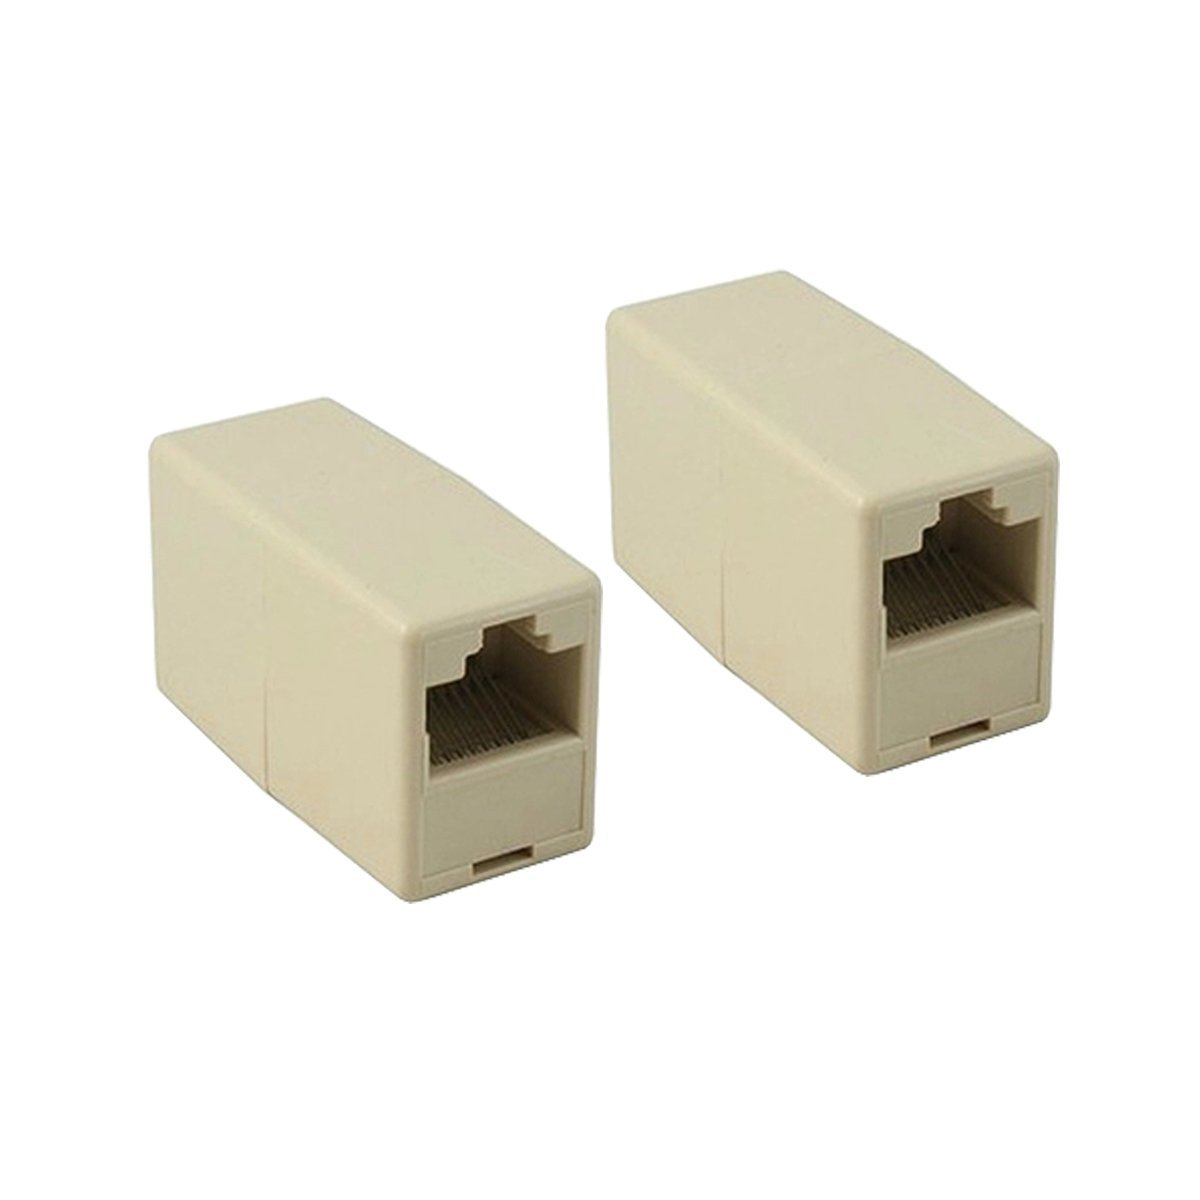 C-zone [2 Pack] RJ45 CAT5 CAT5E Ethernet Network LAN Cable Connector Adapter Female to Female Straight Modular Inline Coupler